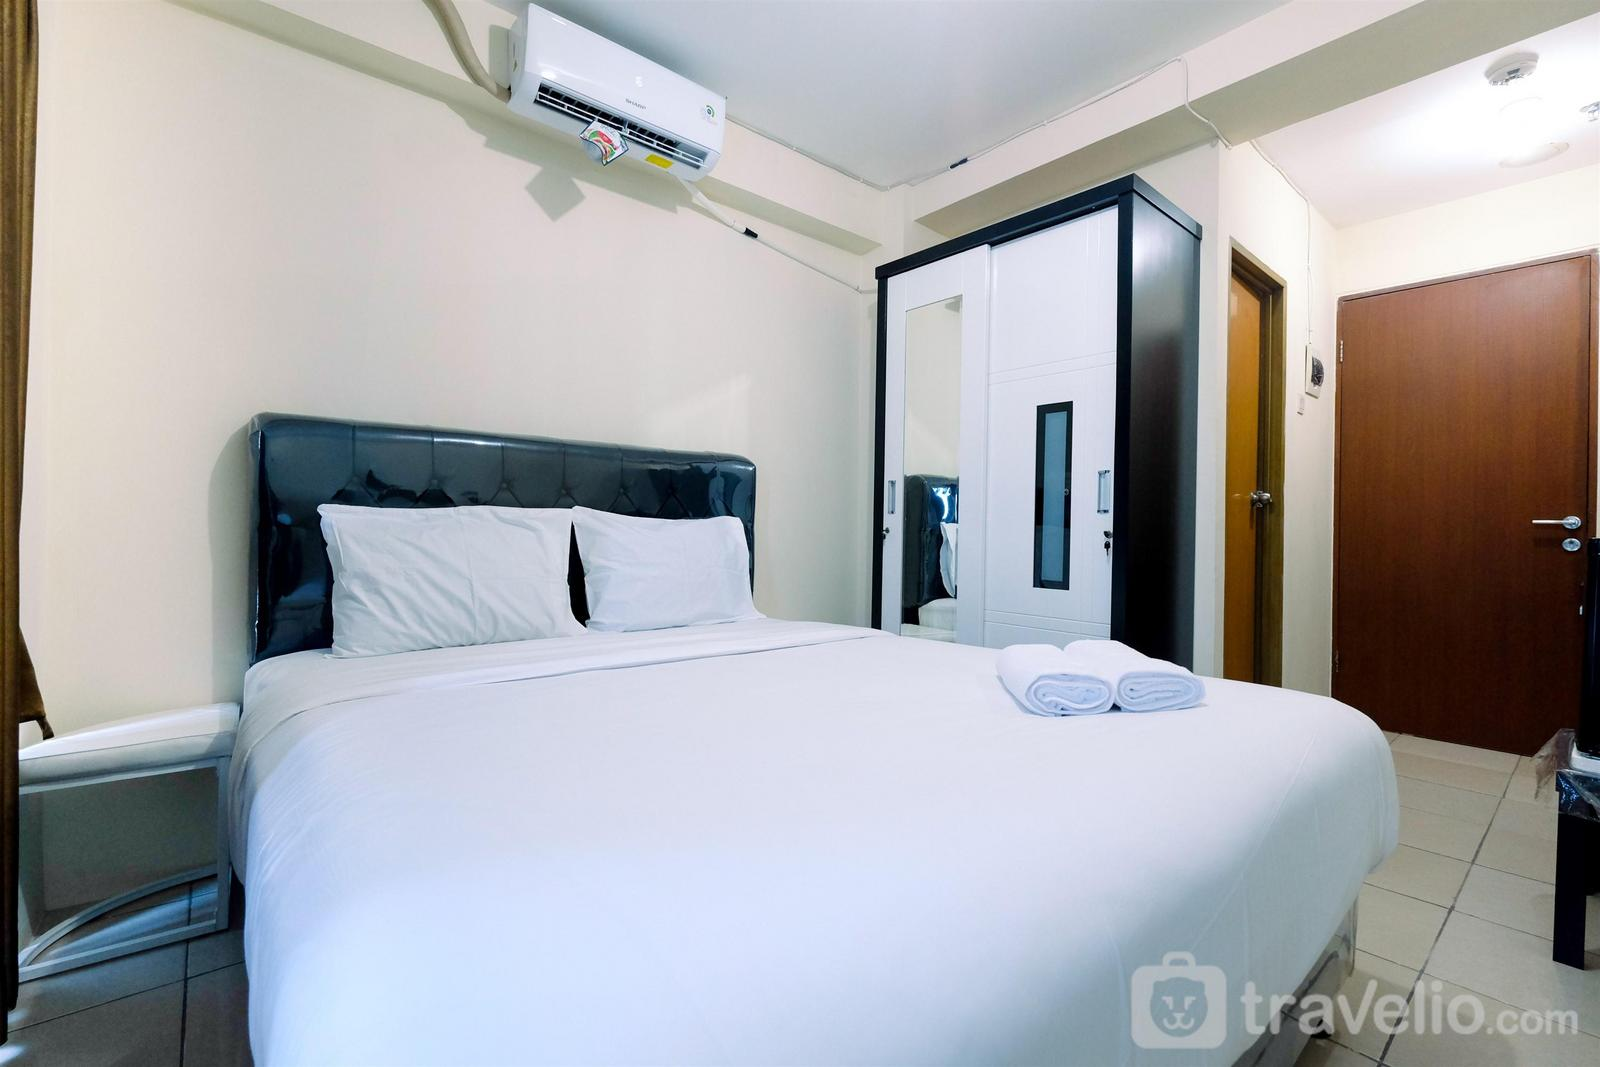 Apartemen Tifolia - Comfy Studio Room at Tifolia Apartment By Travelio